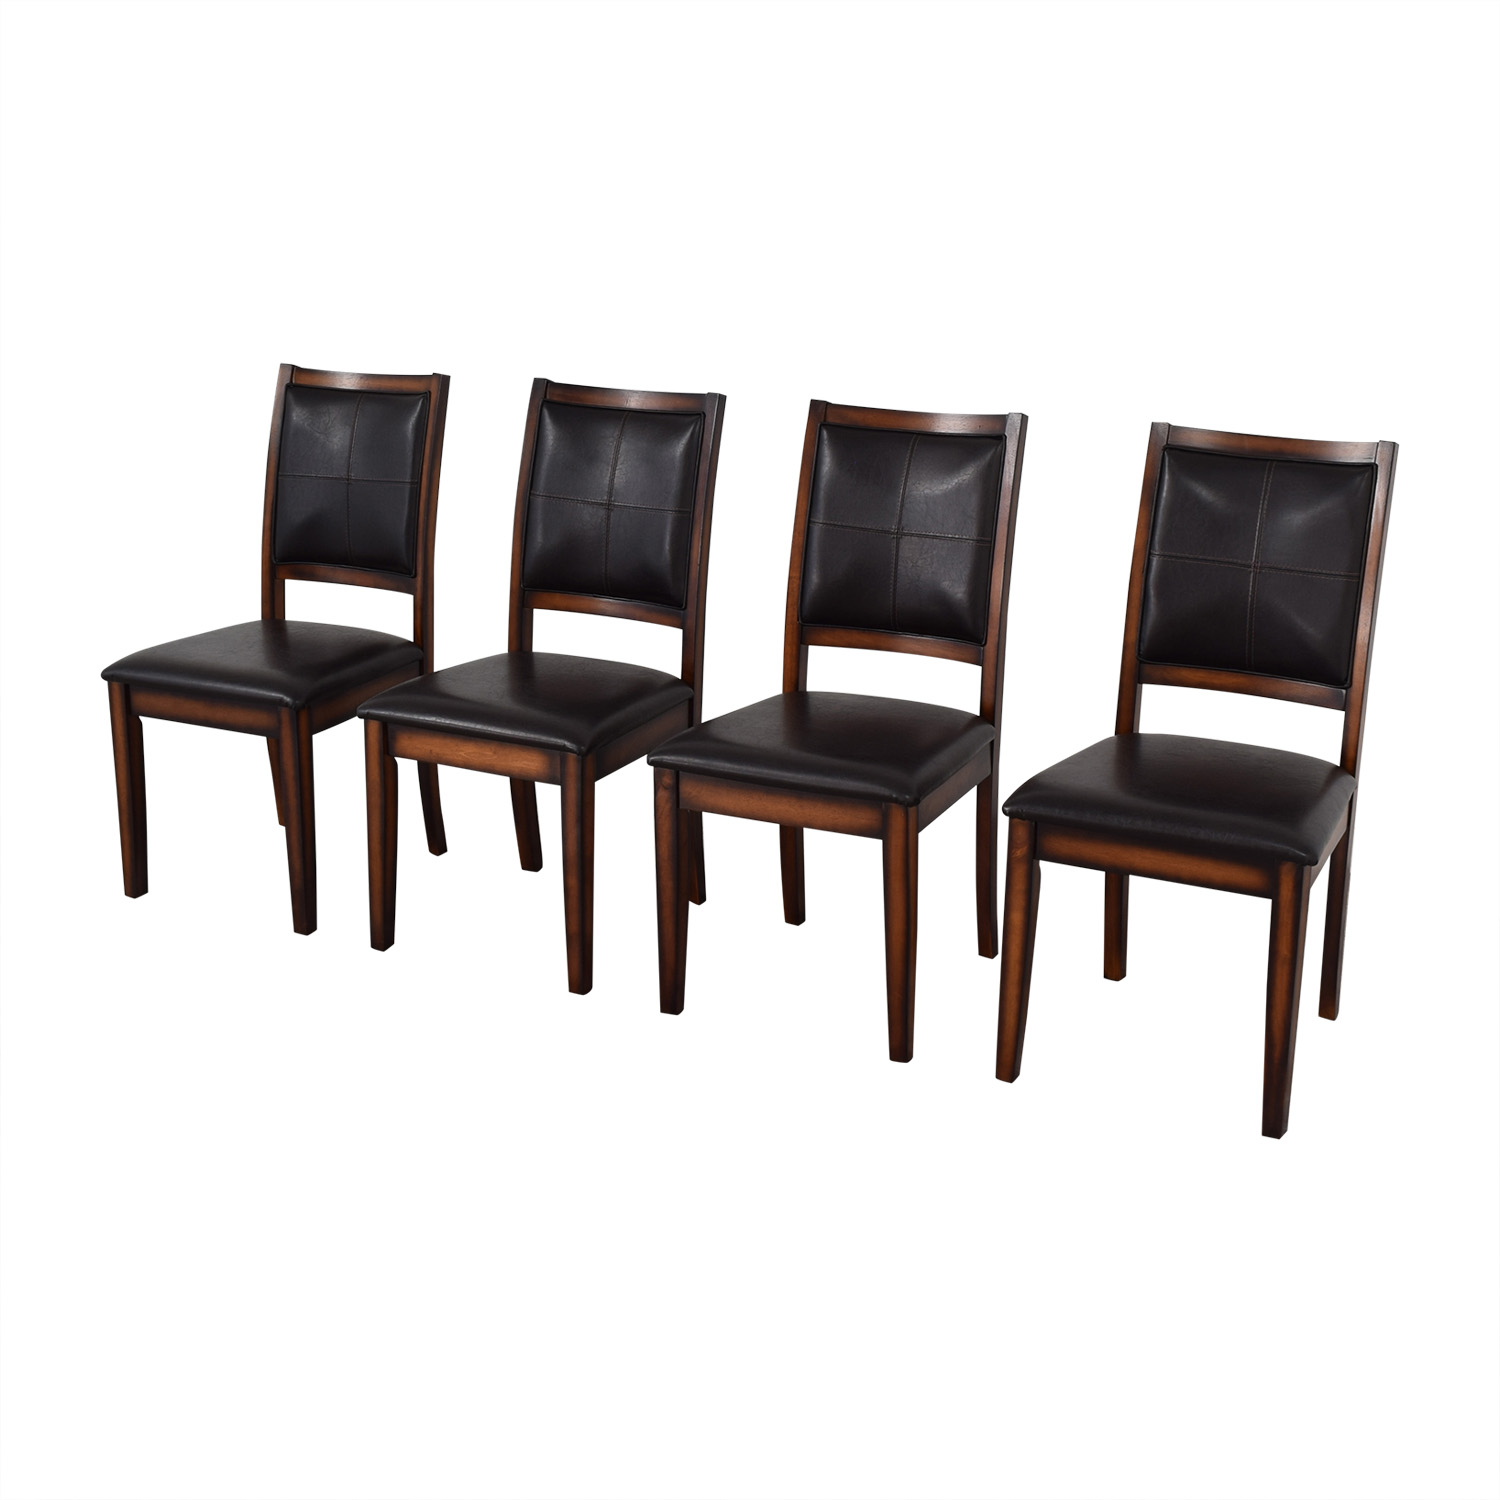 shop Raymour & Flanigan Upholstered Dining Chairs Raymour & Flanigan